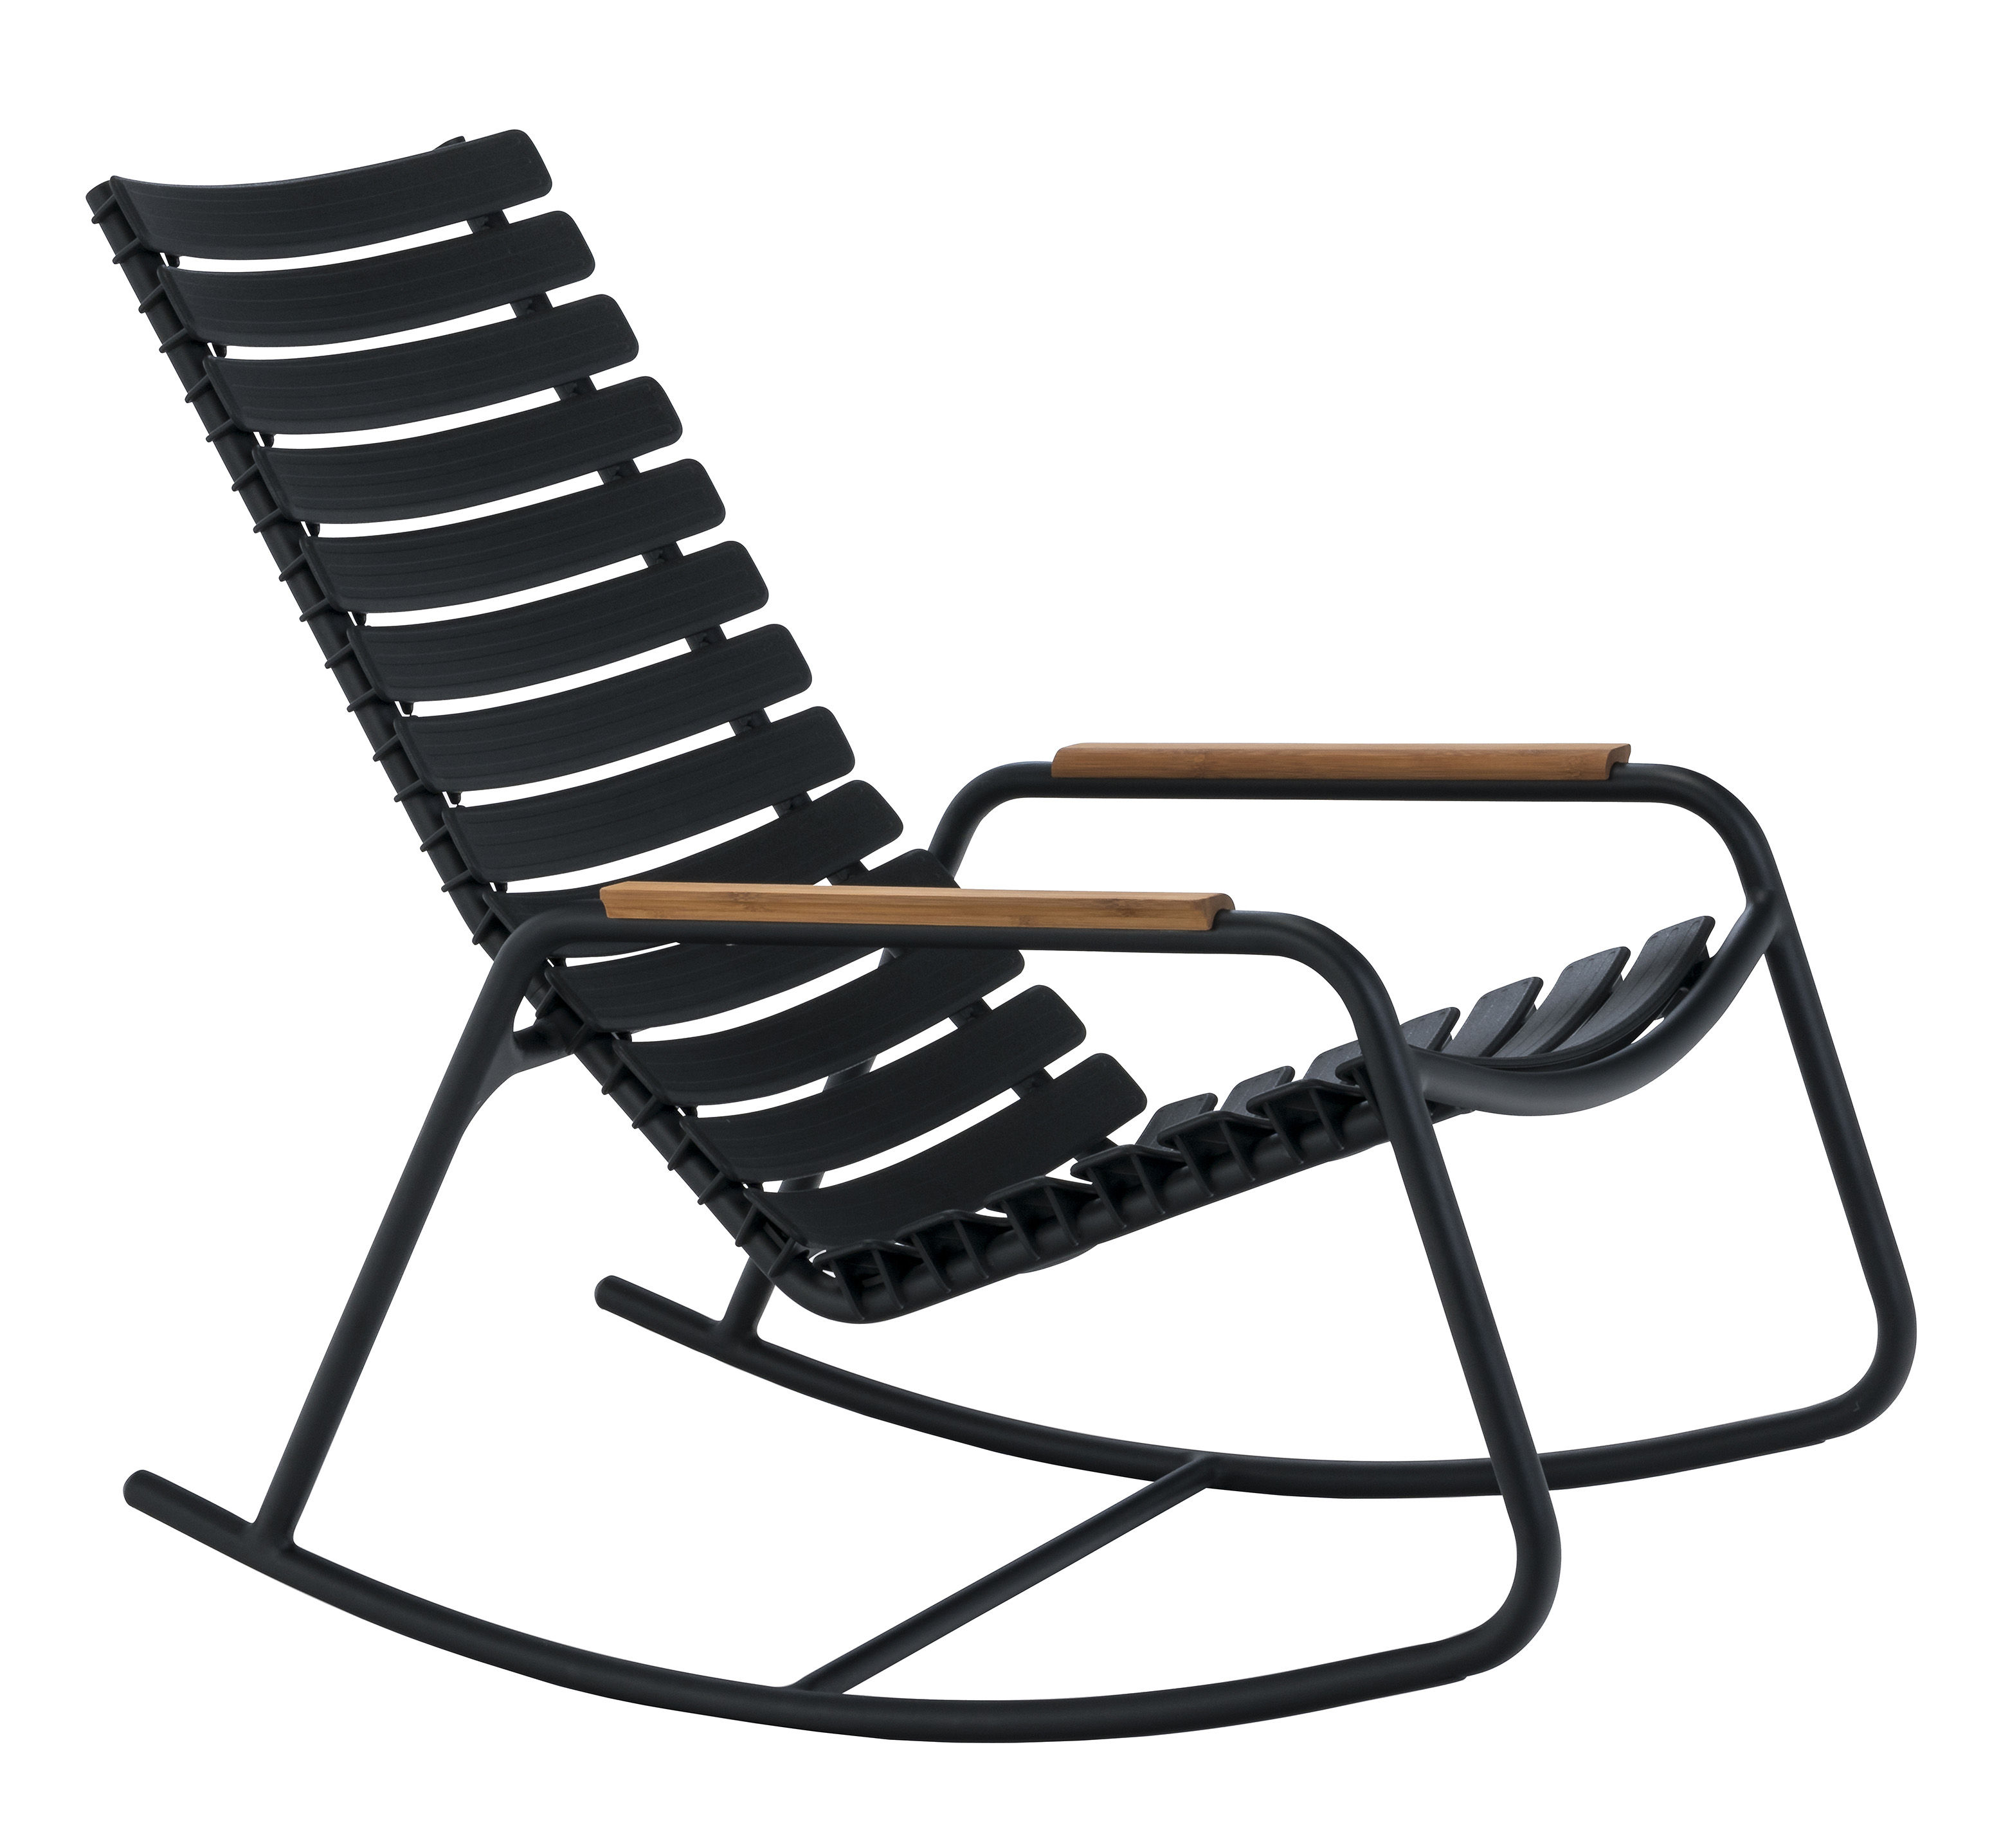 Furniture - Armchairs - Clips Rocking chair - / Plastic & bamboo armrests by Houe - Black / Bamboo - Aluminium, Bamboo, Plastic material